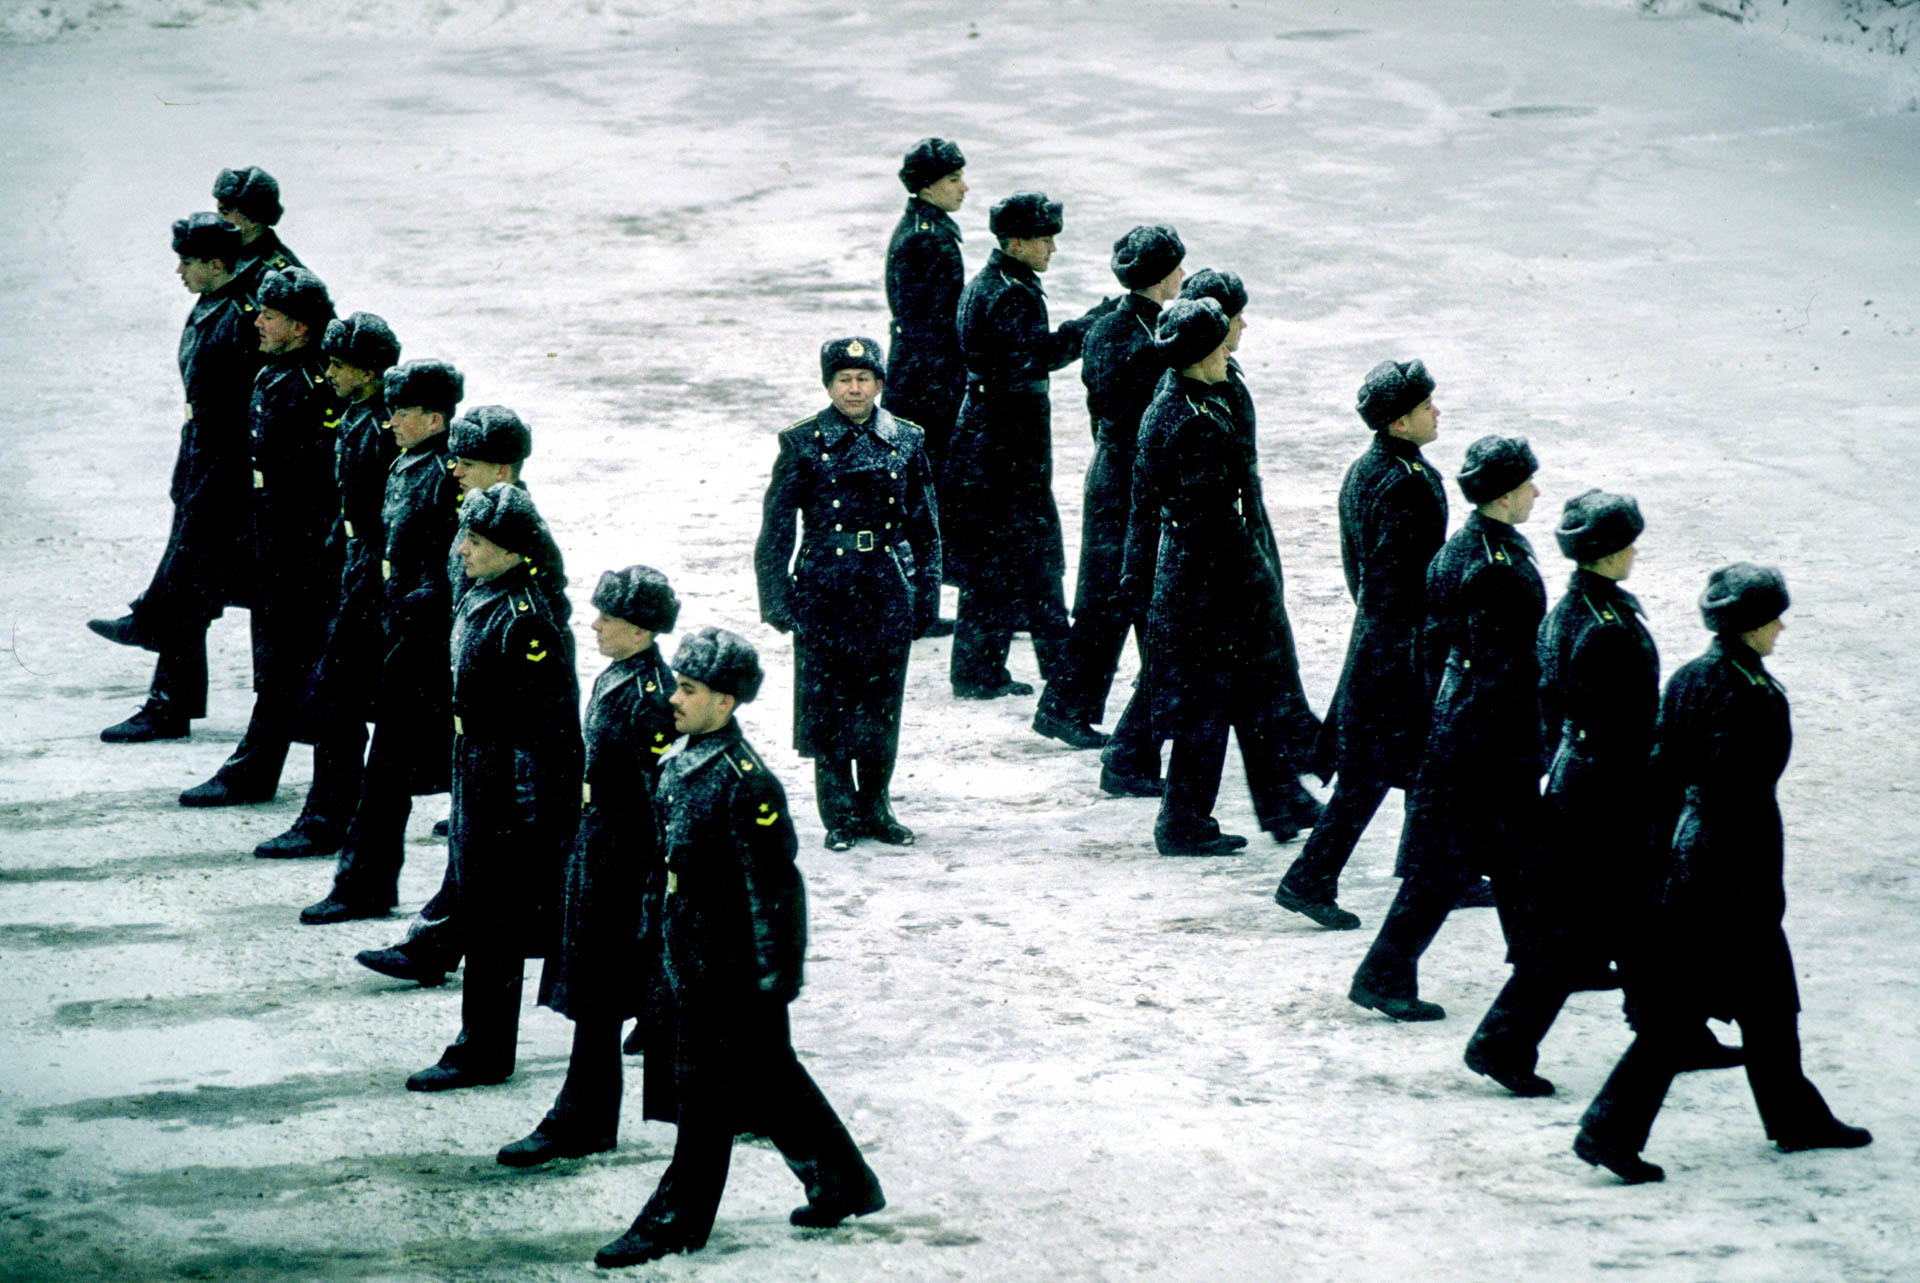 Russia - December 1, 1990 Military Academy in Russia.